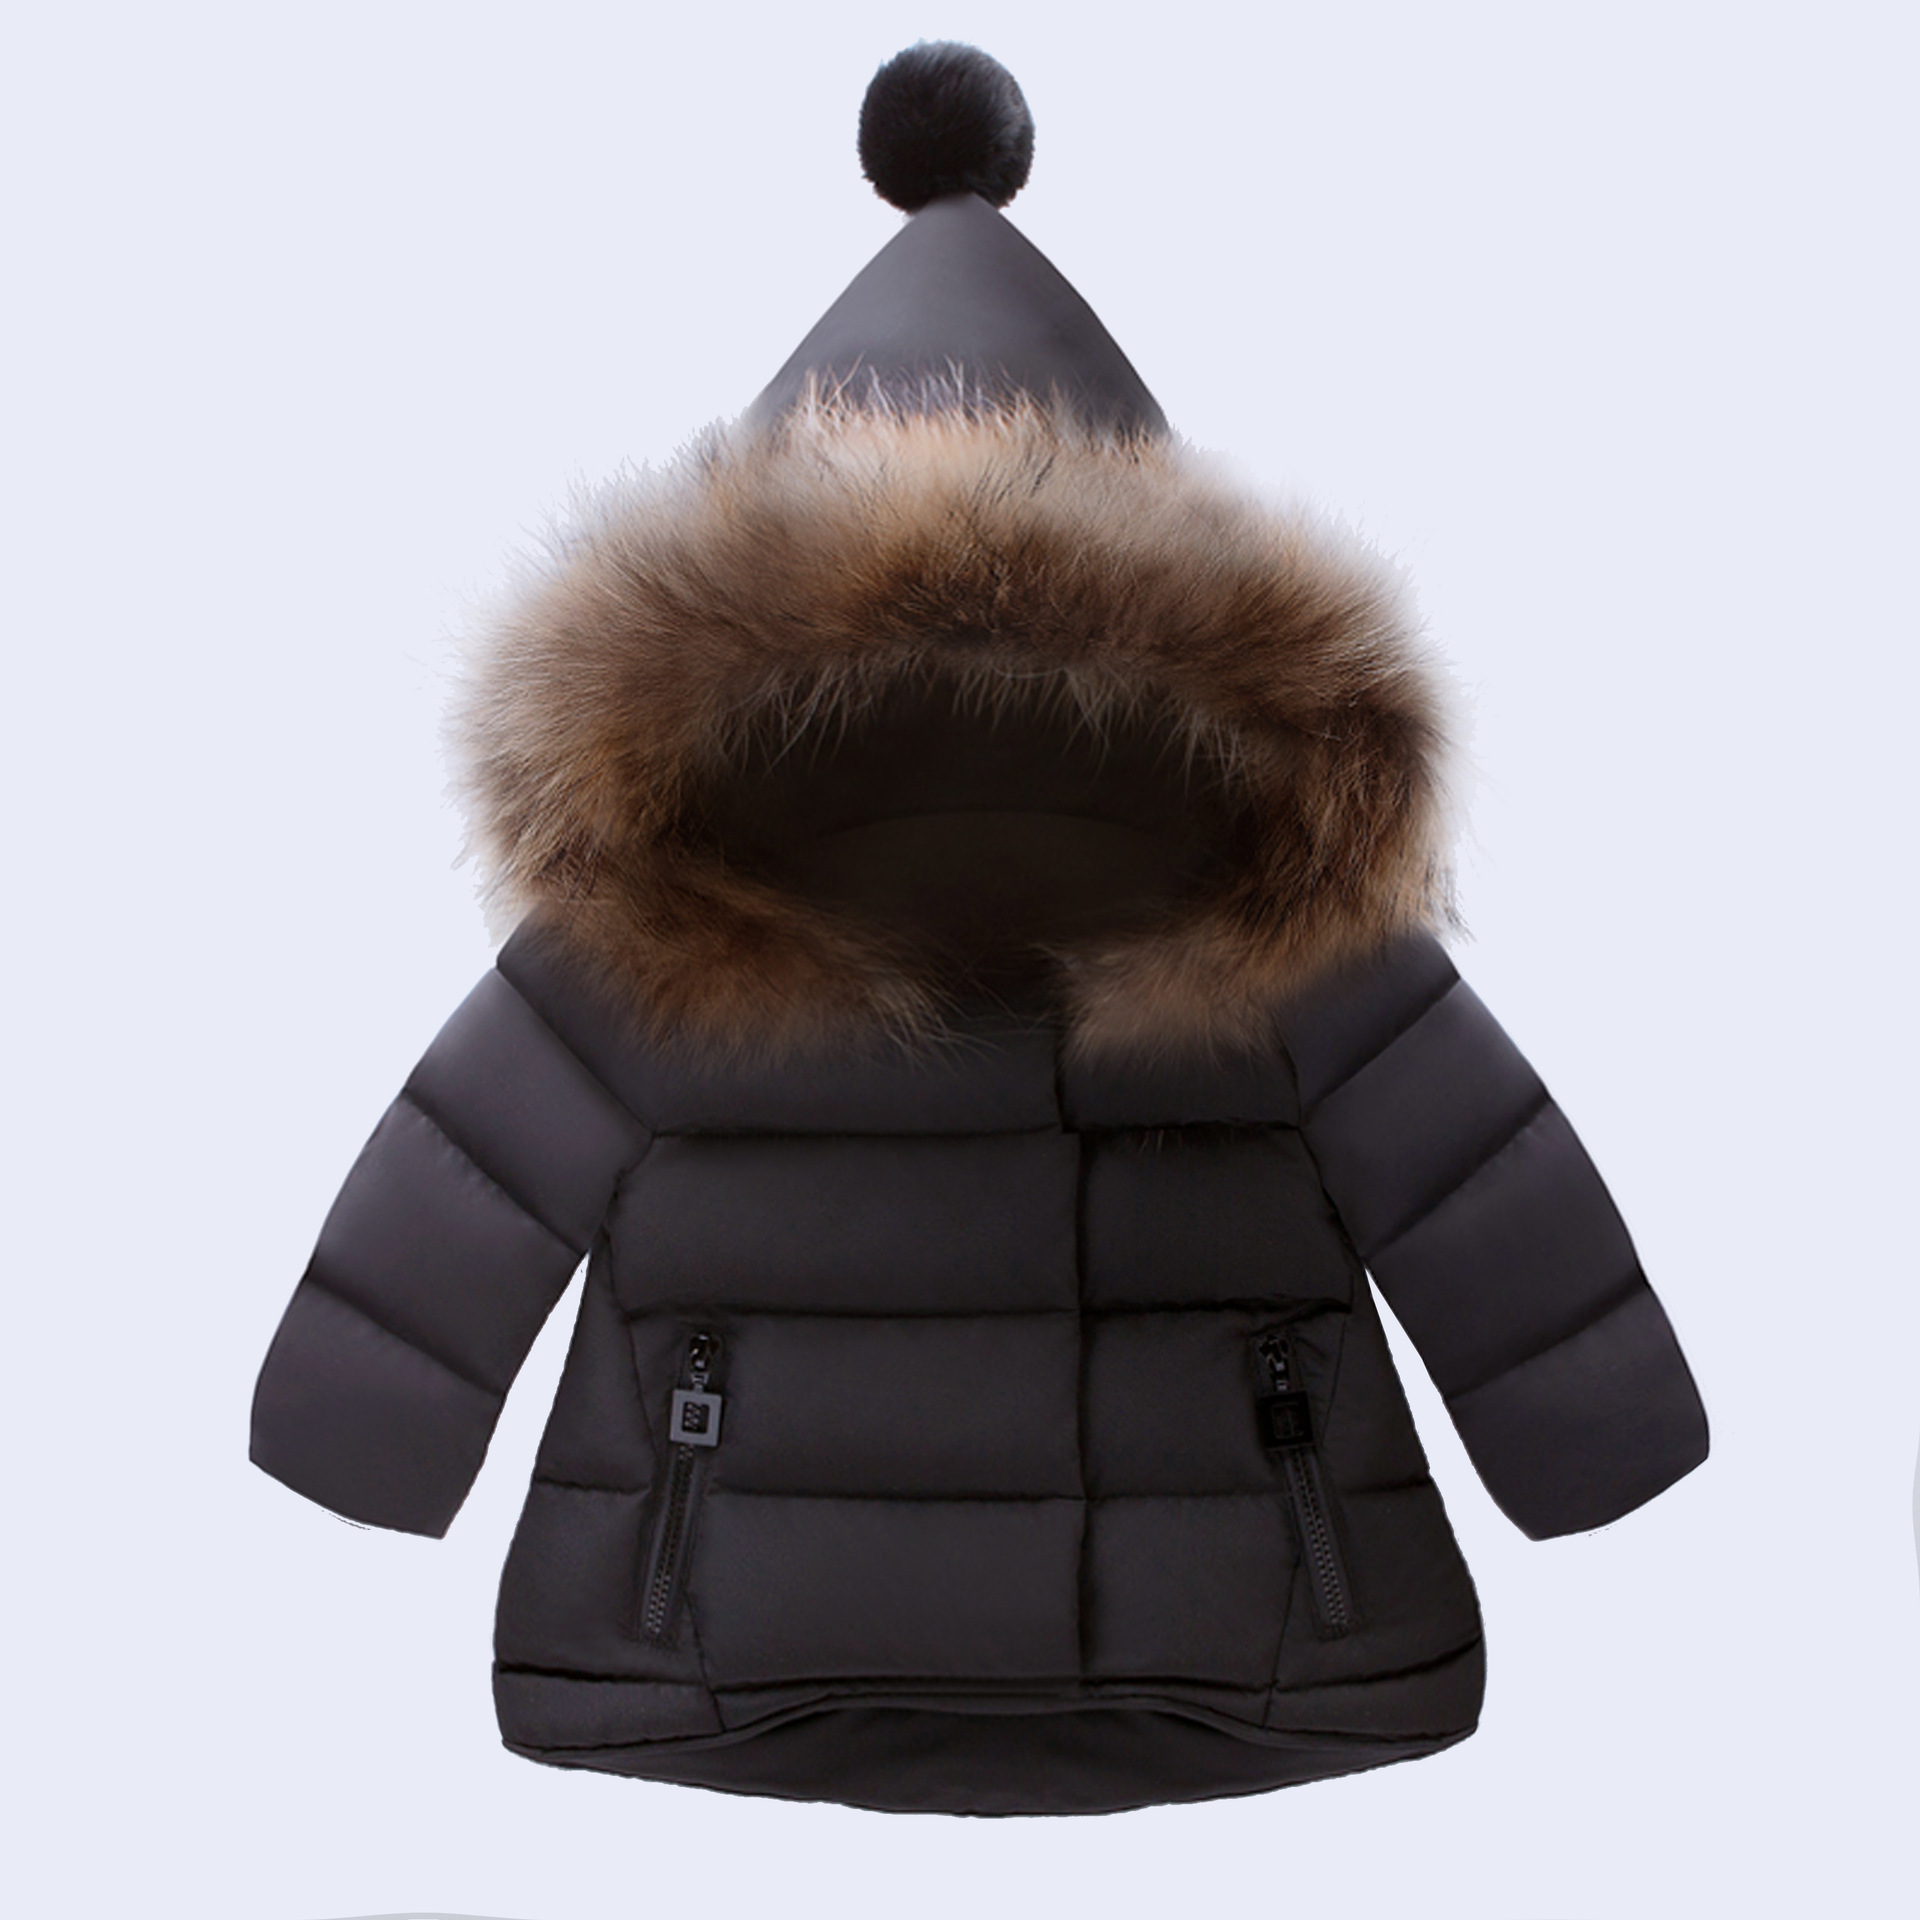 2017 Joker Baby Girls Winter Coat Kids Jacket Children Outerwear Hooded Zipper Thicken Warm Fur Collar Cotton-padded Clothes nice winter women hooded coat fur collar thicken warm long jacket female plus size outerwear parka ladies parkas feminino zipper